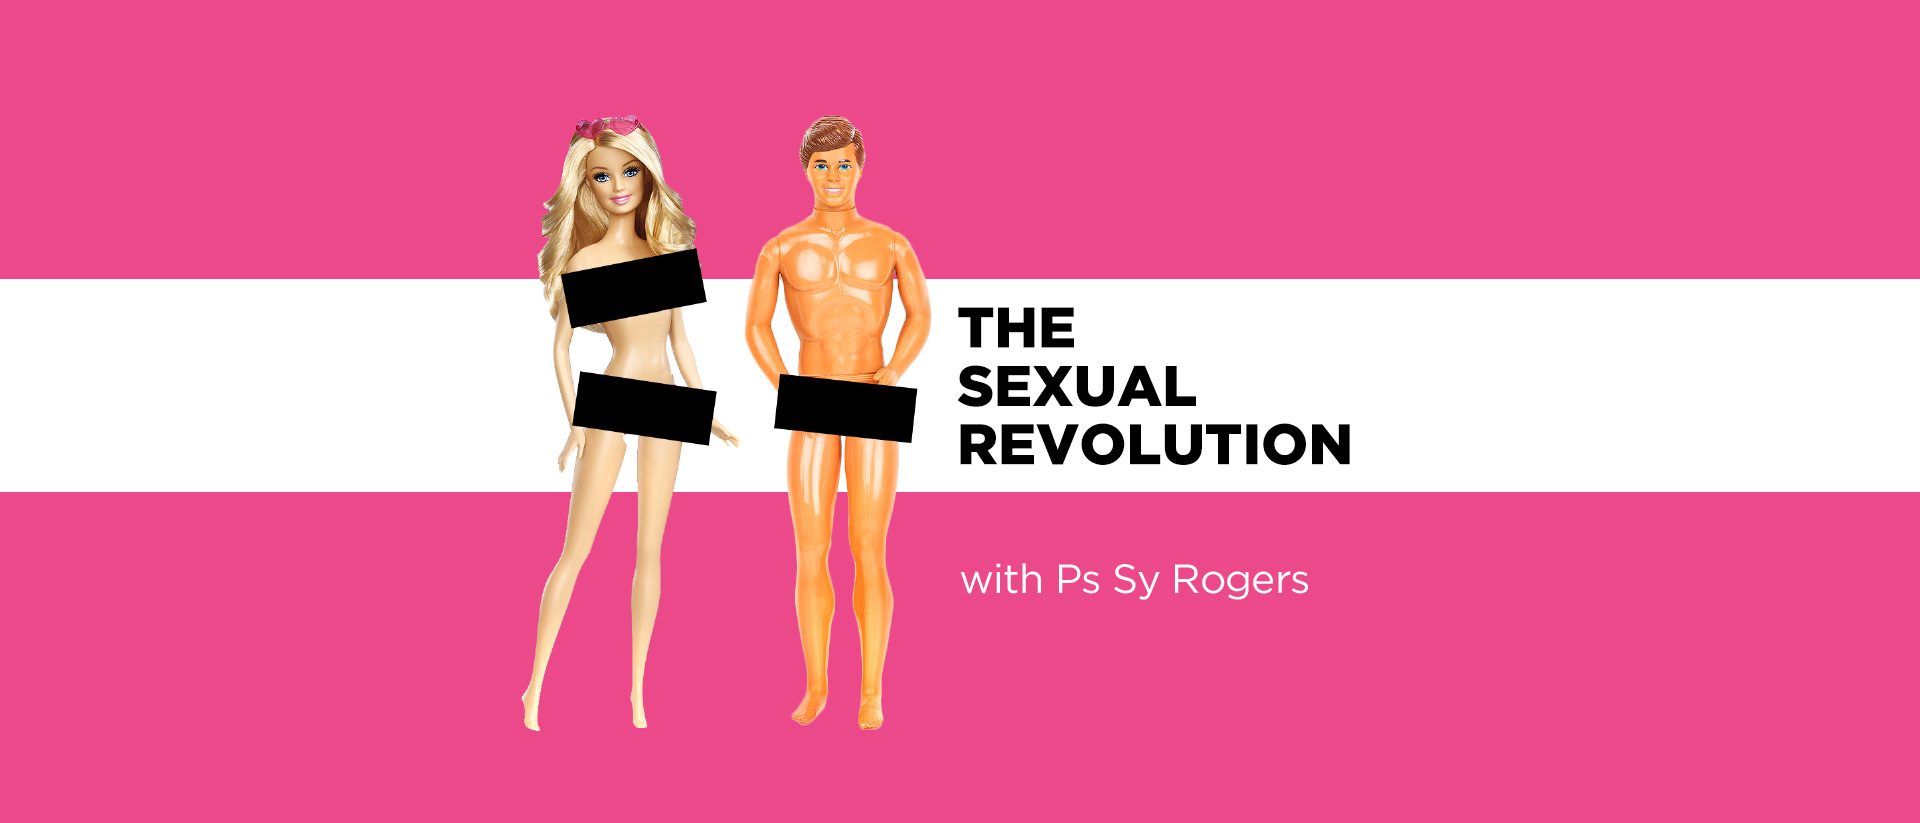 The Sexual Revolution